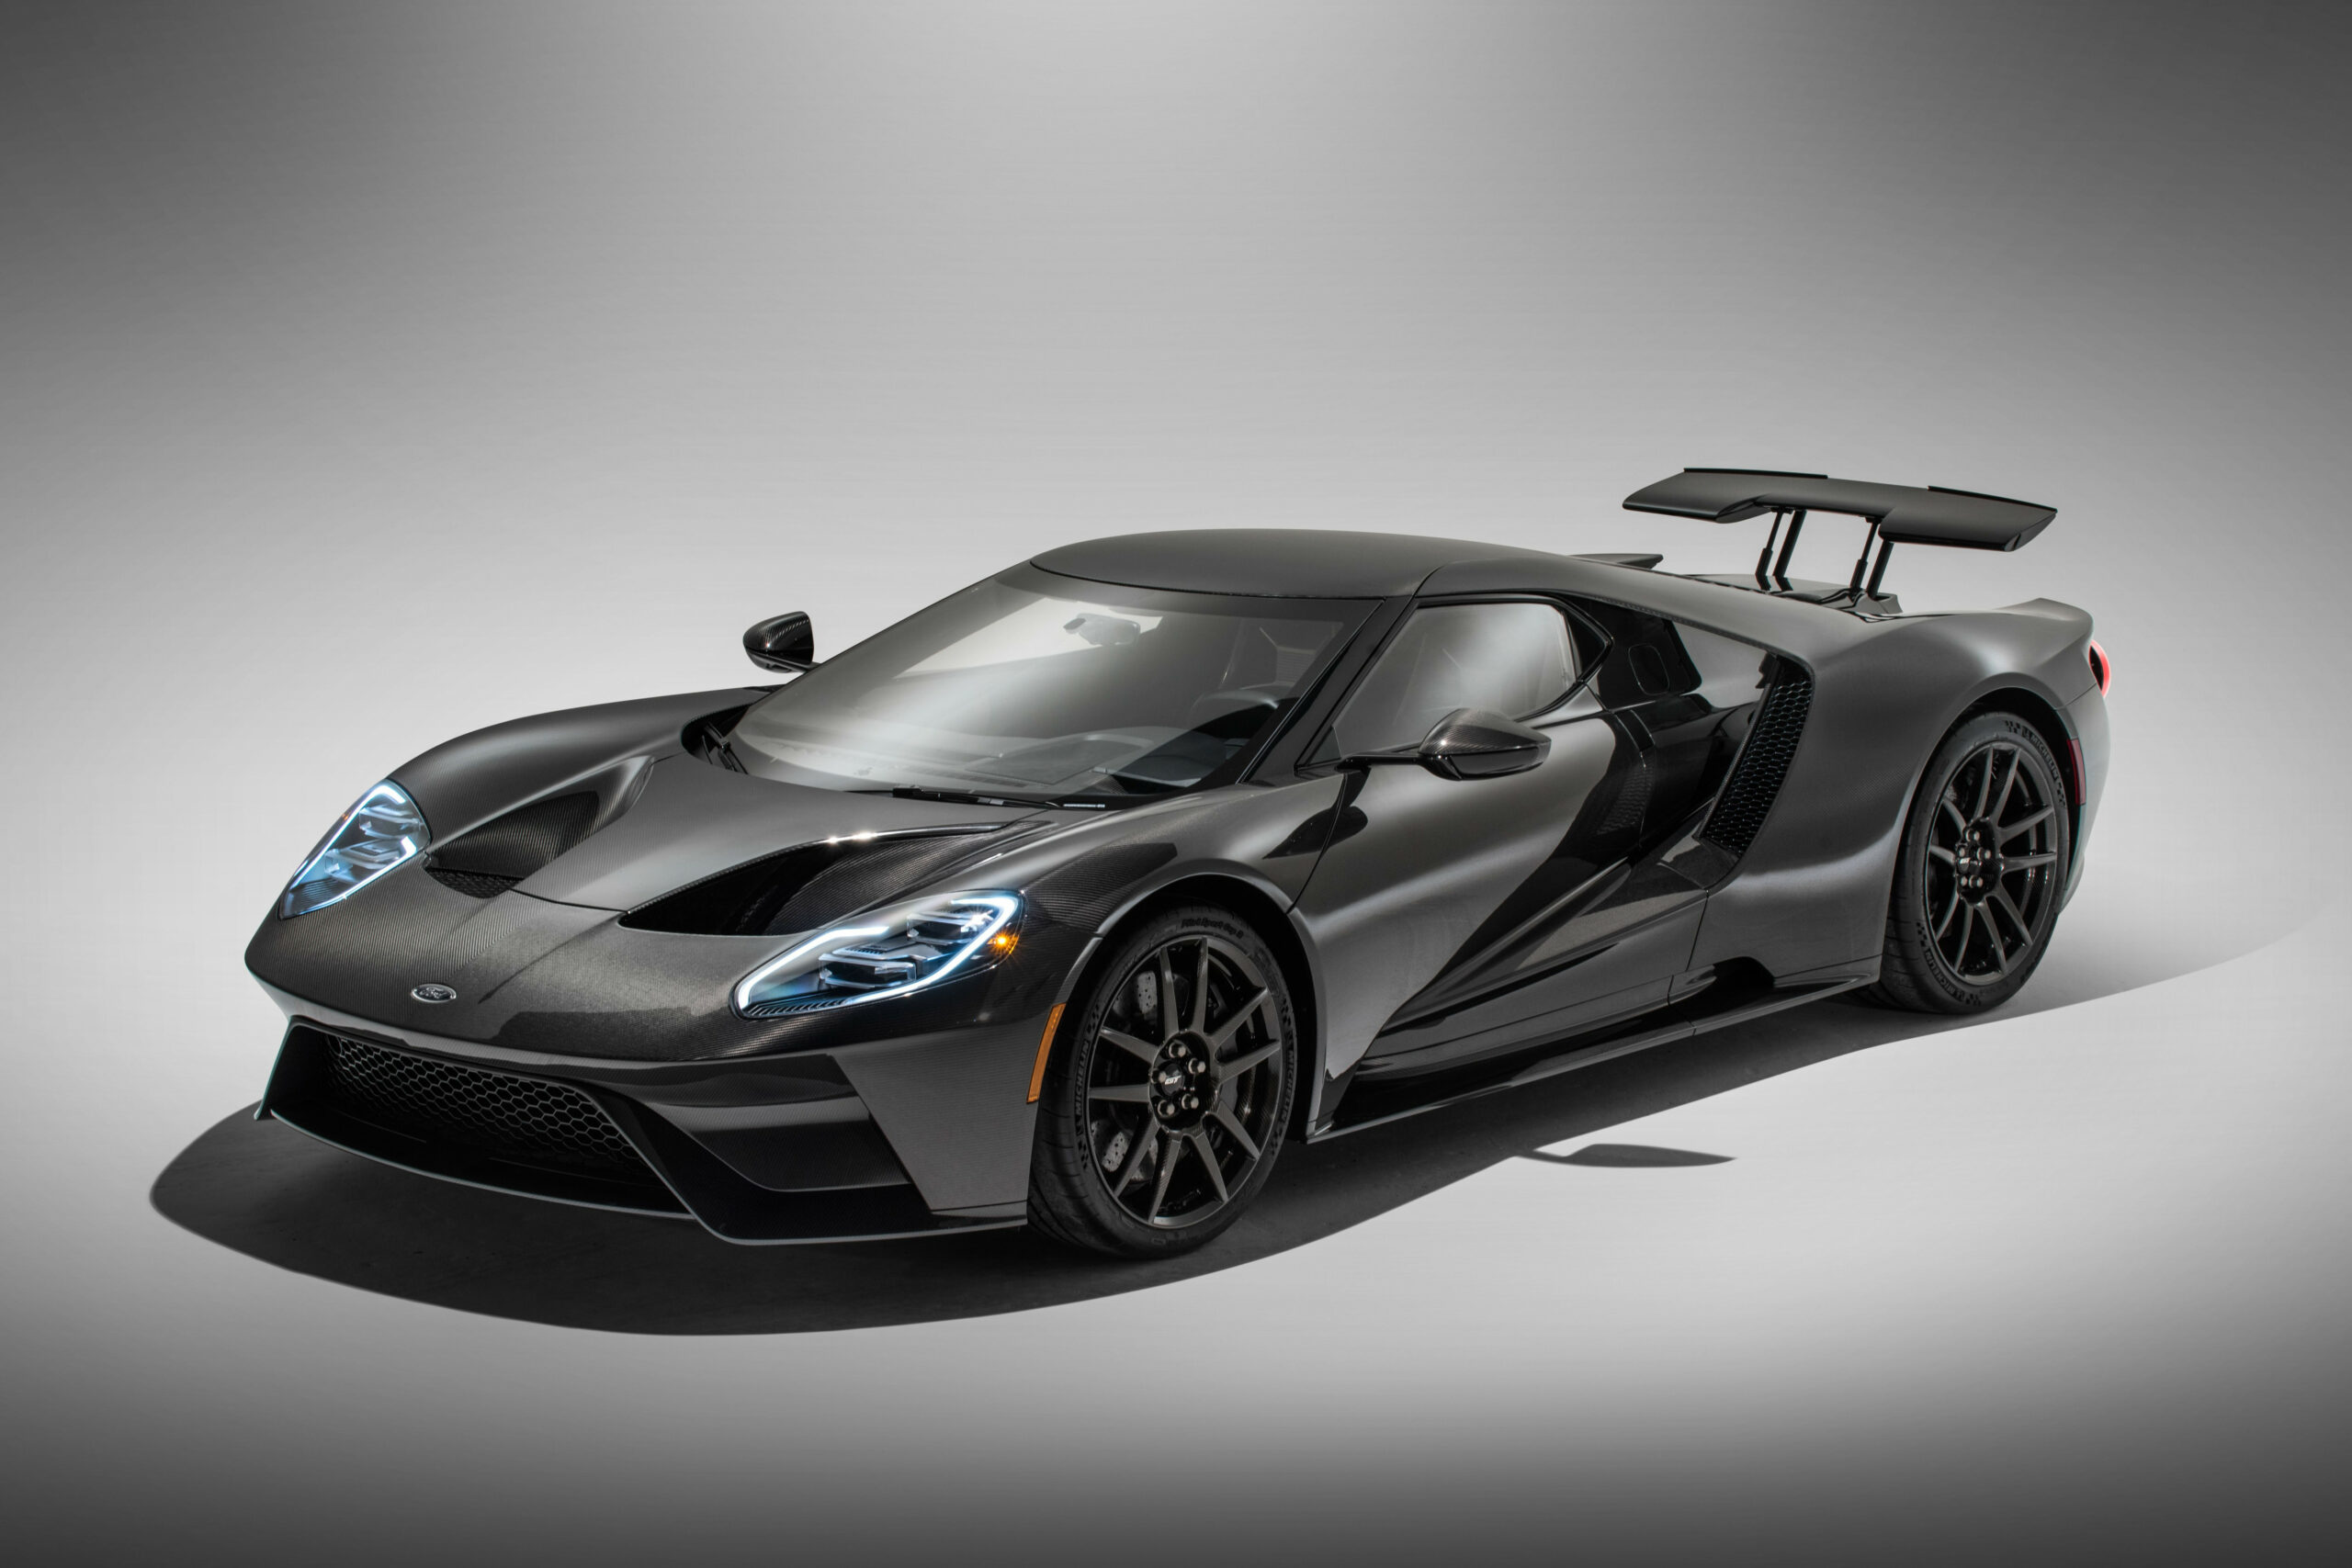 6 Ford GT Review, Pricing, and Specs